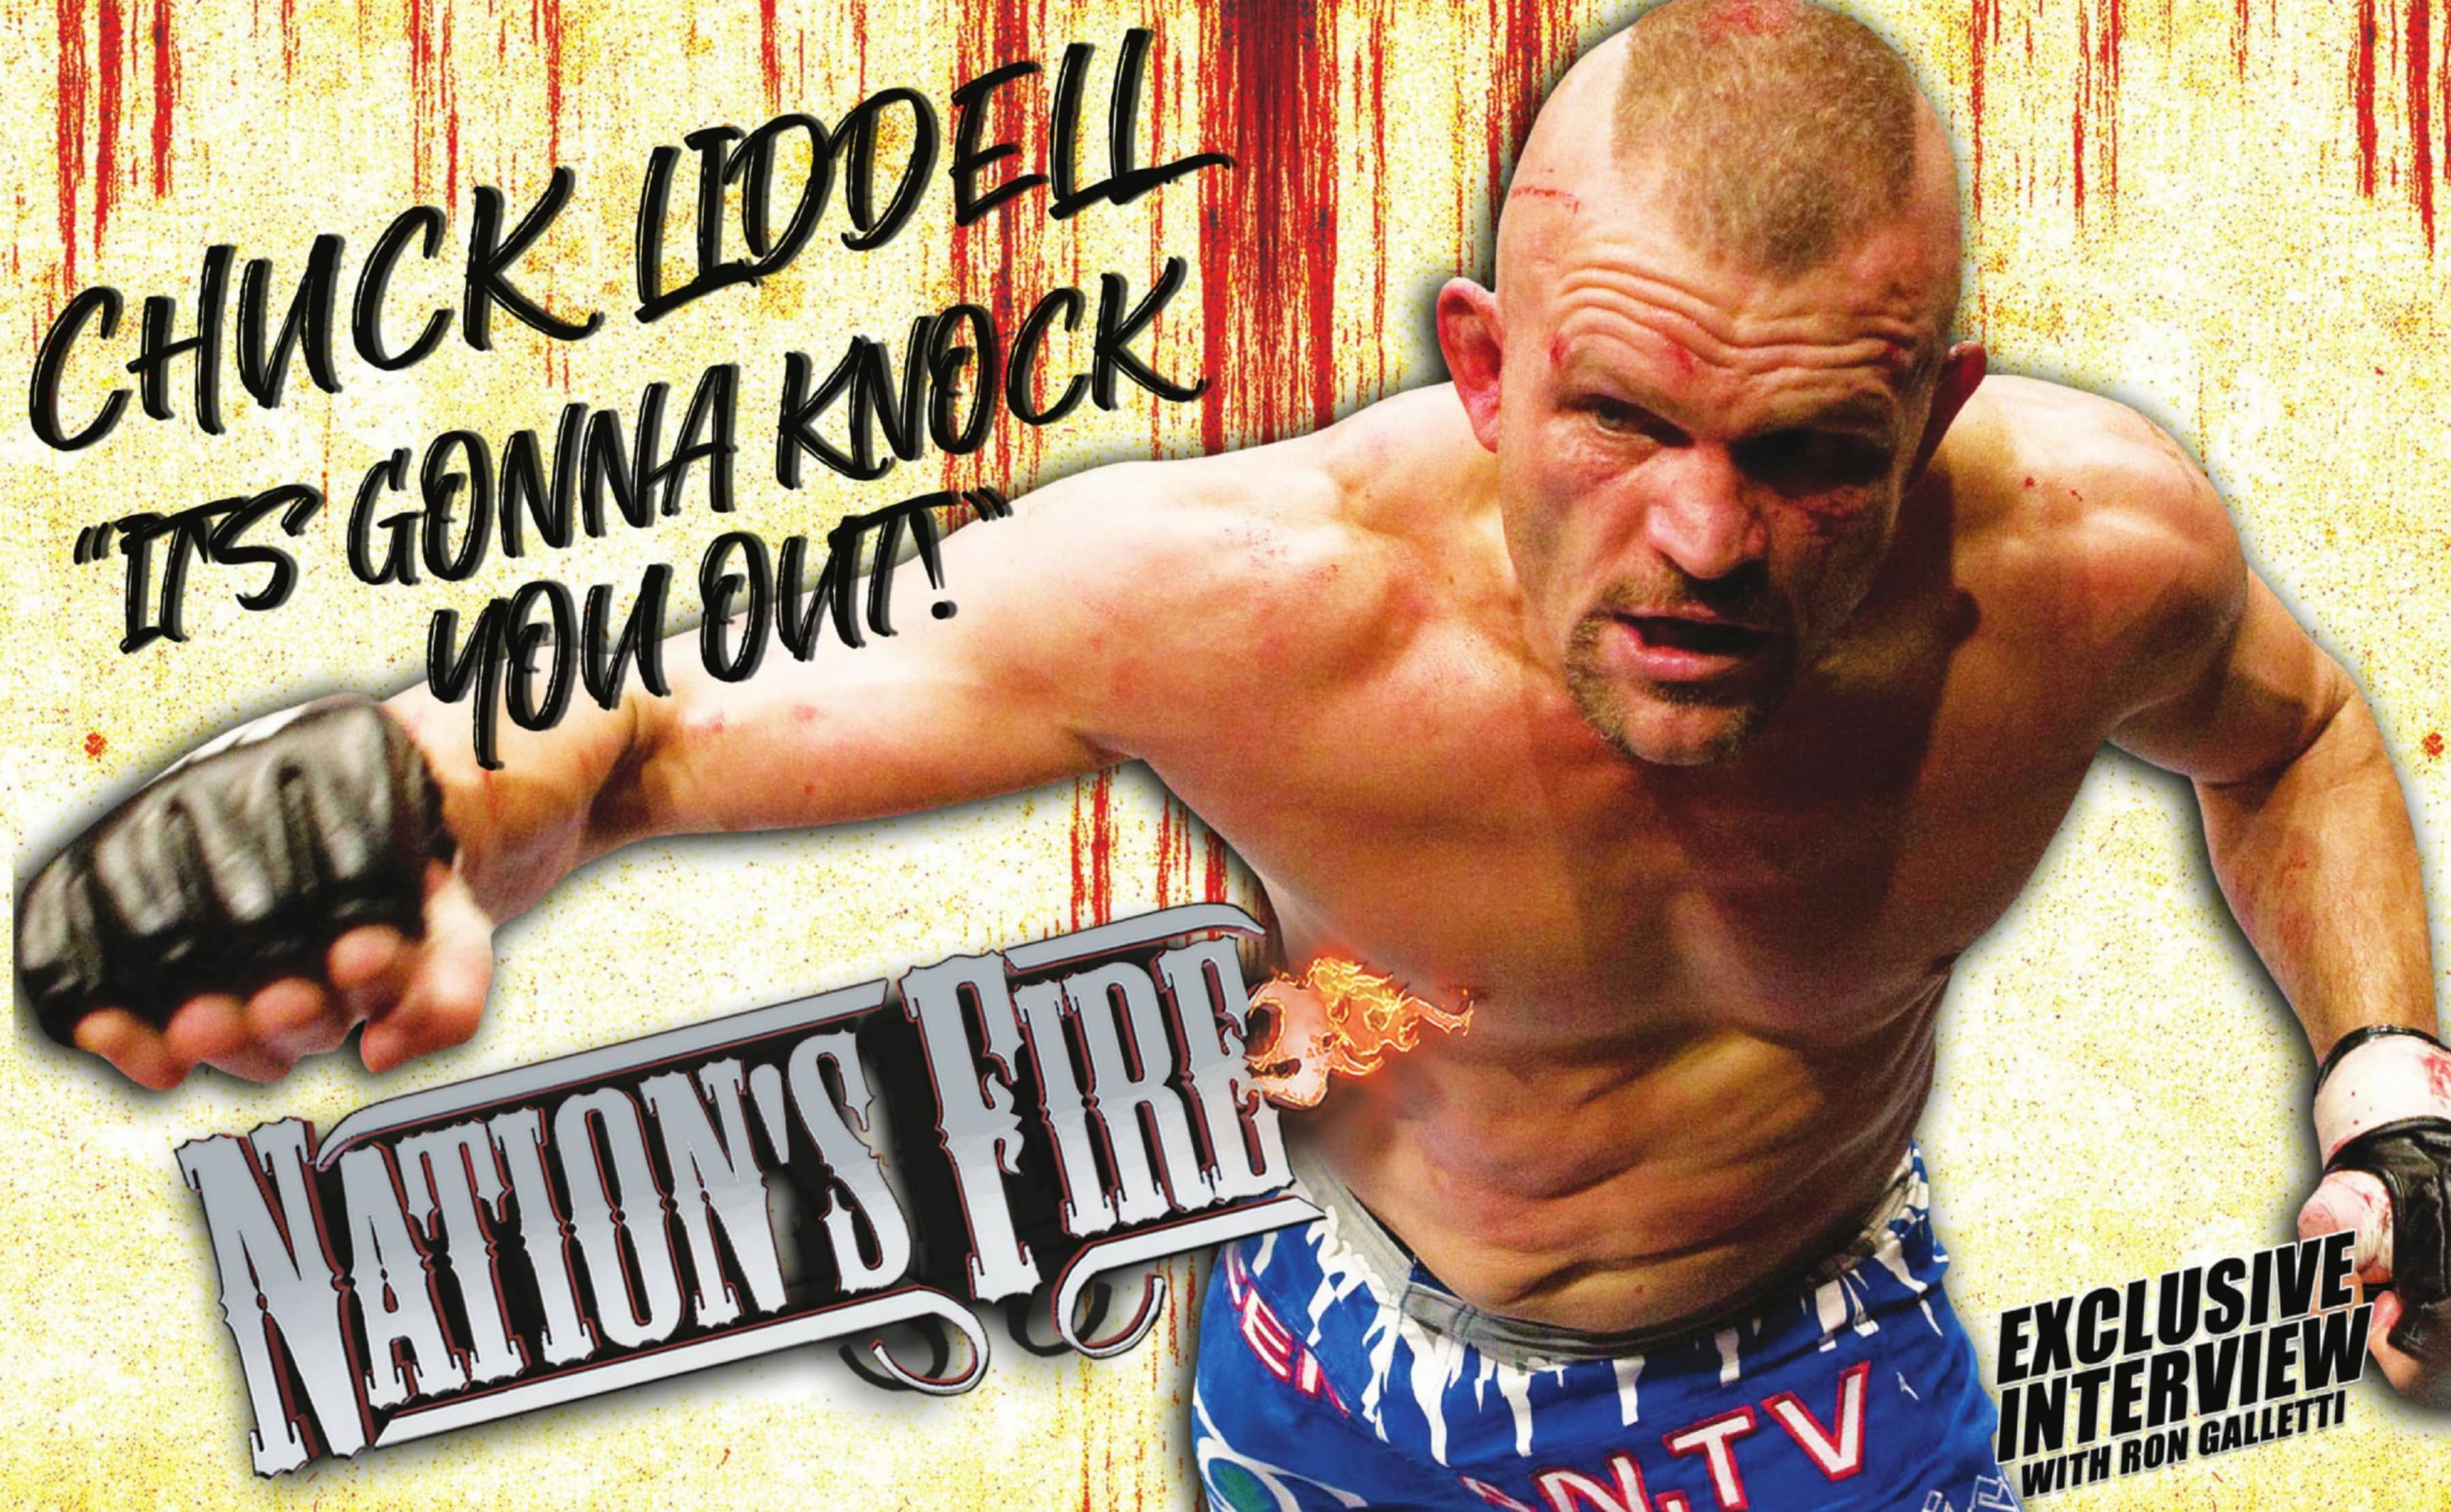 NATION'S FIRE - CHUCK LIDDELL 'ITS GONNA KNOCK YOU OUT!'